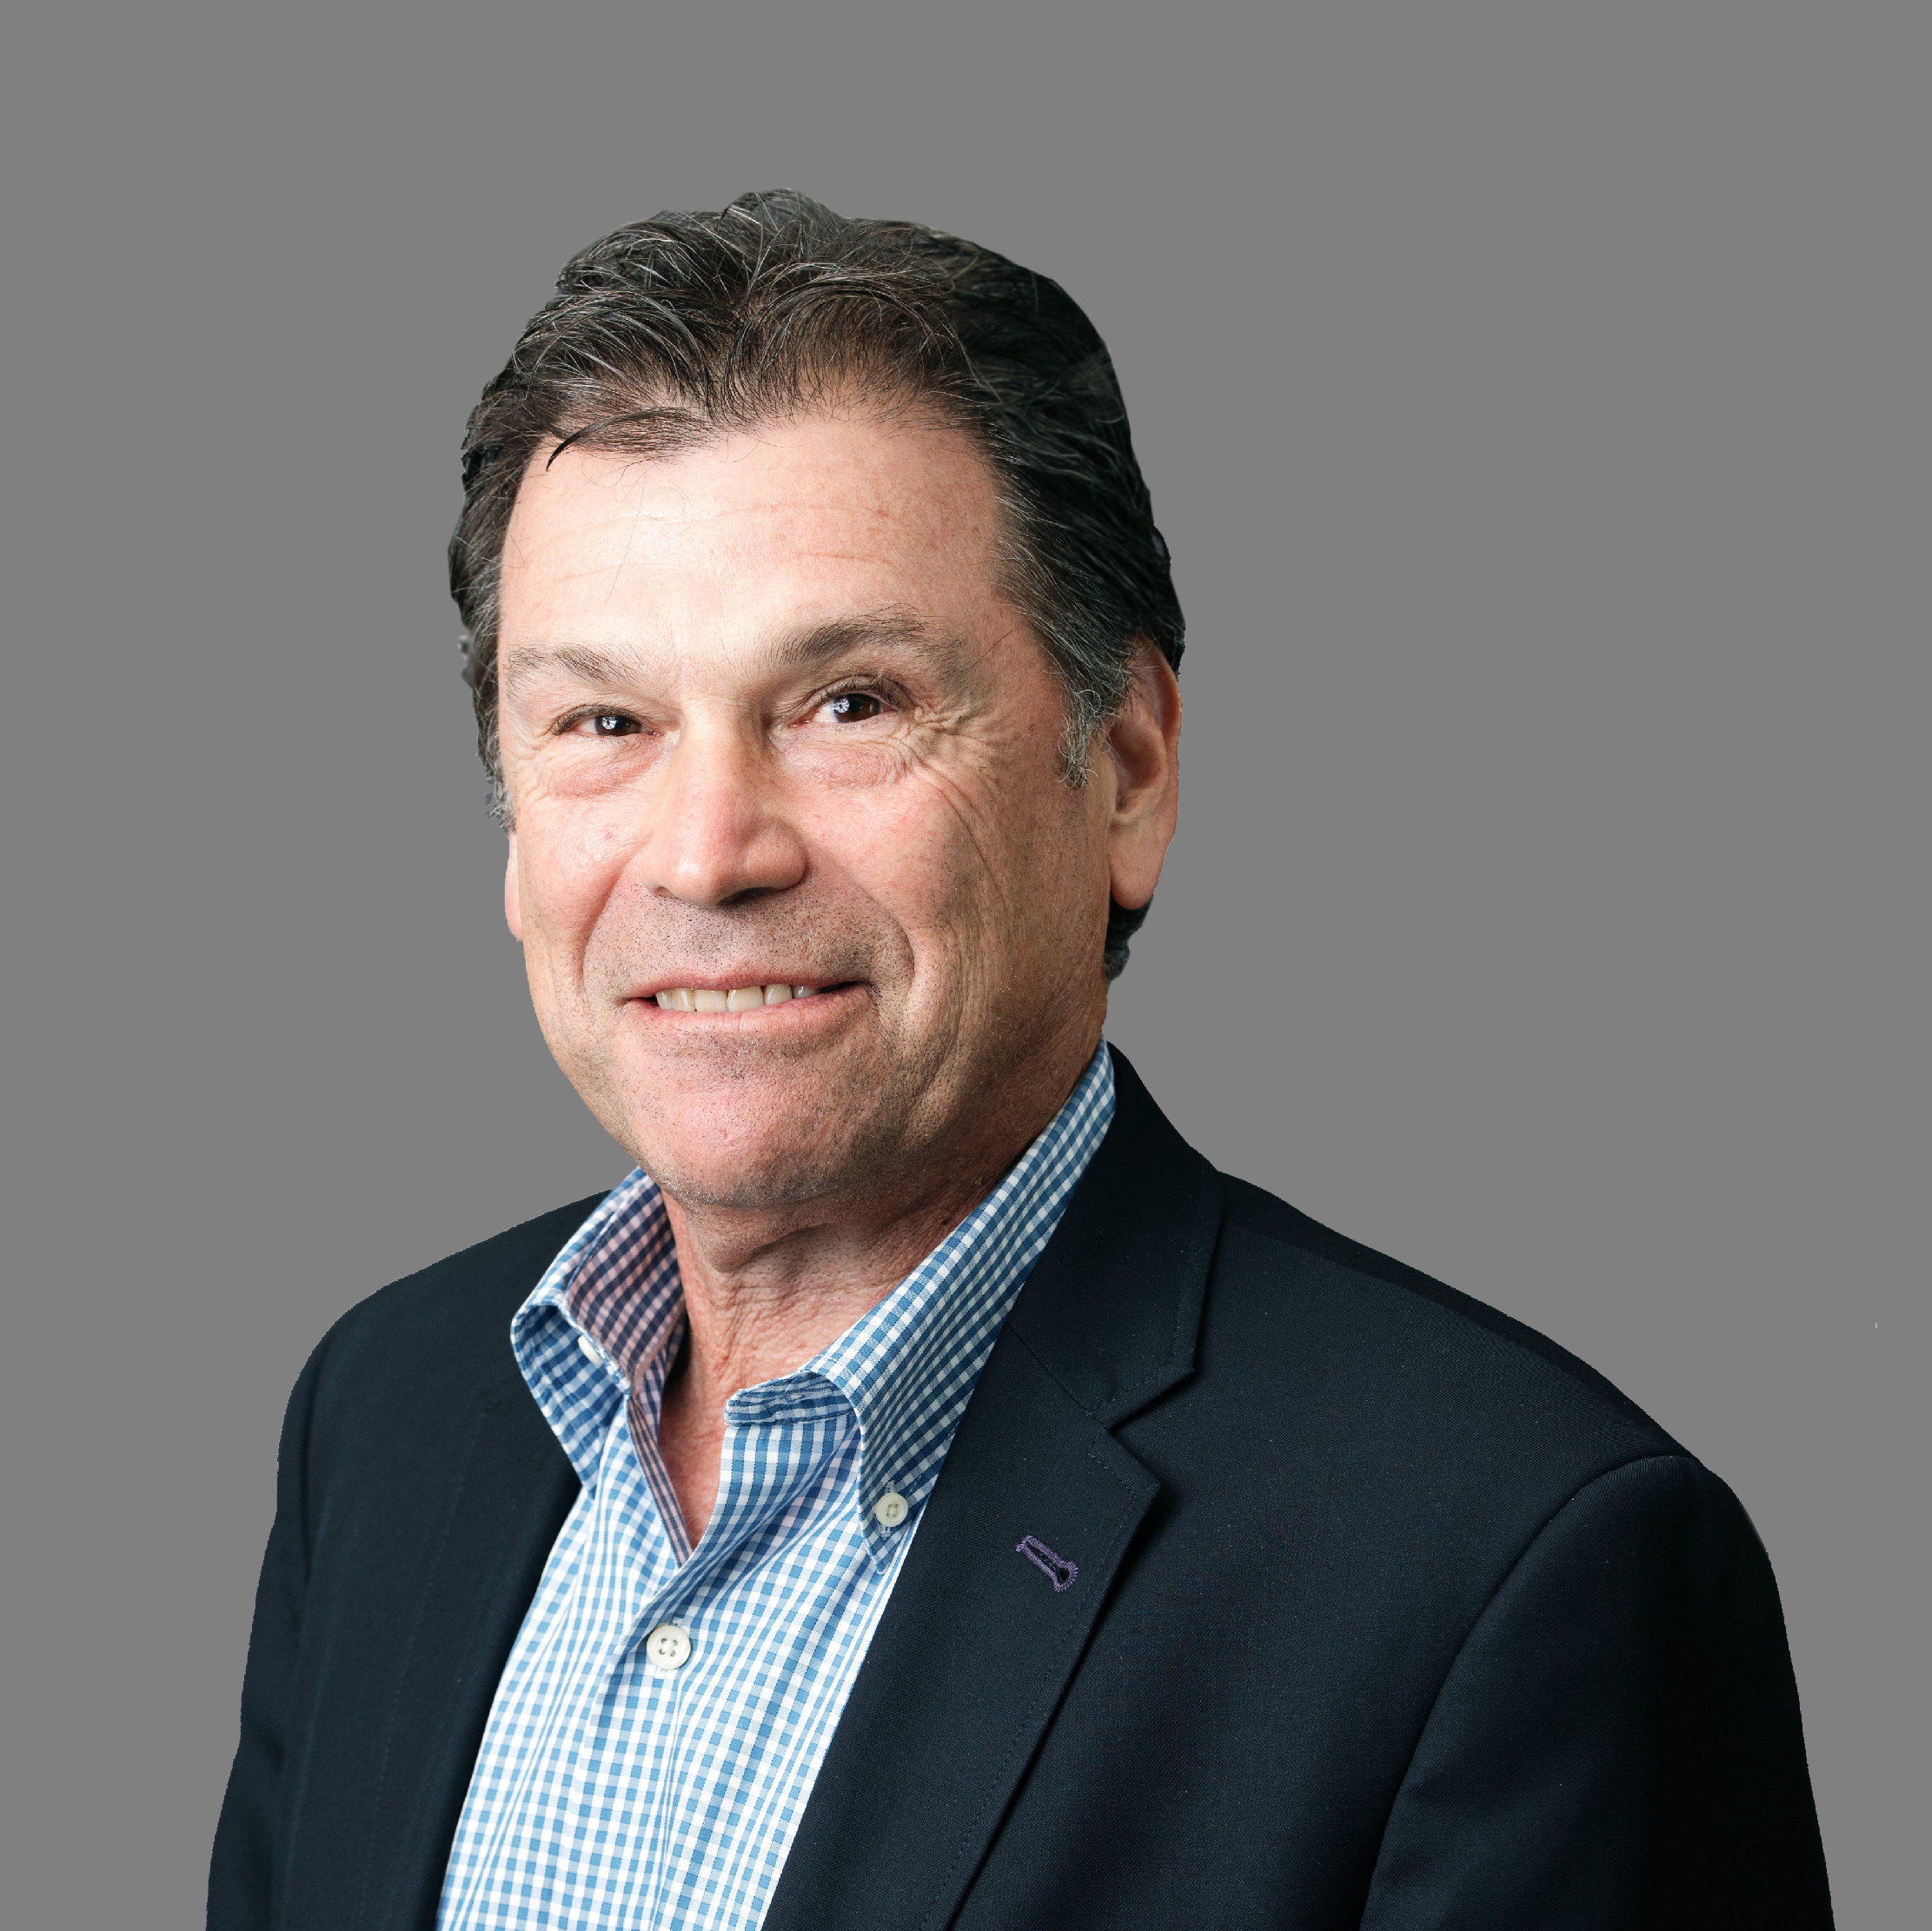 Gordon Paris - Chairman of the Board & Member of the Compensation CommitteeLEarn more